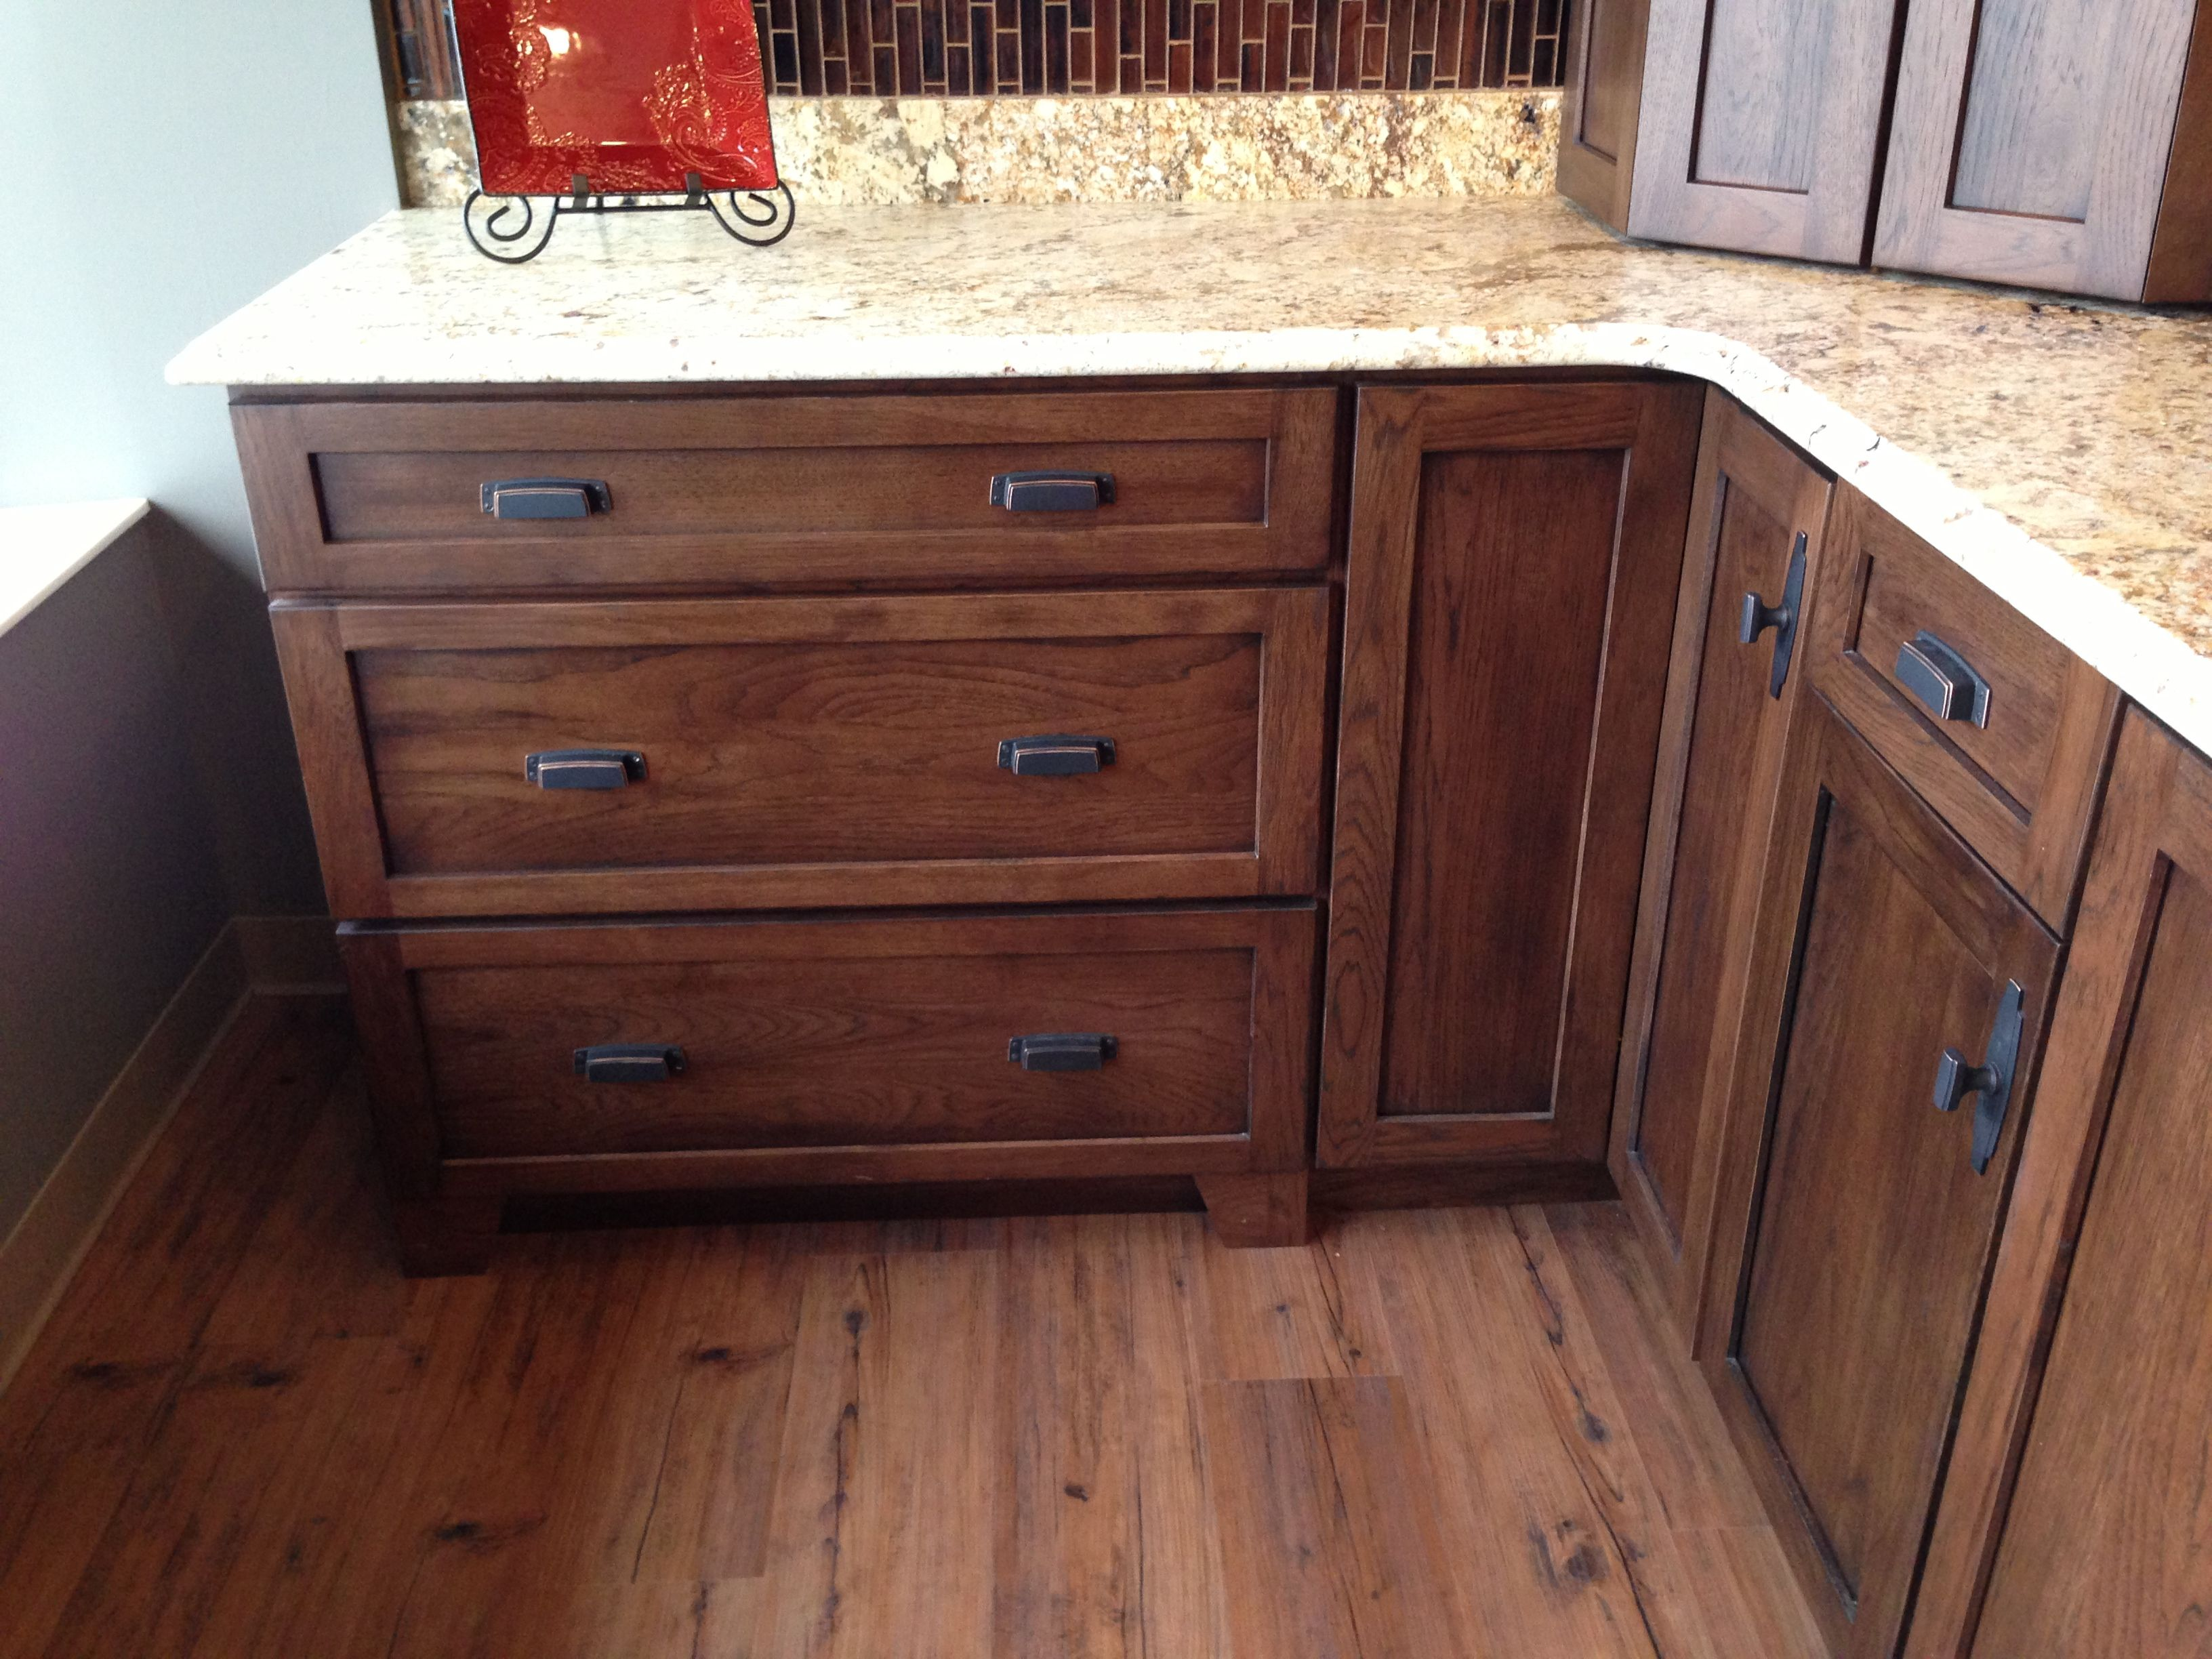 Hickory Kitchen Cabinets Pre Made Cupboards Dark Shaker Style For Bathroom